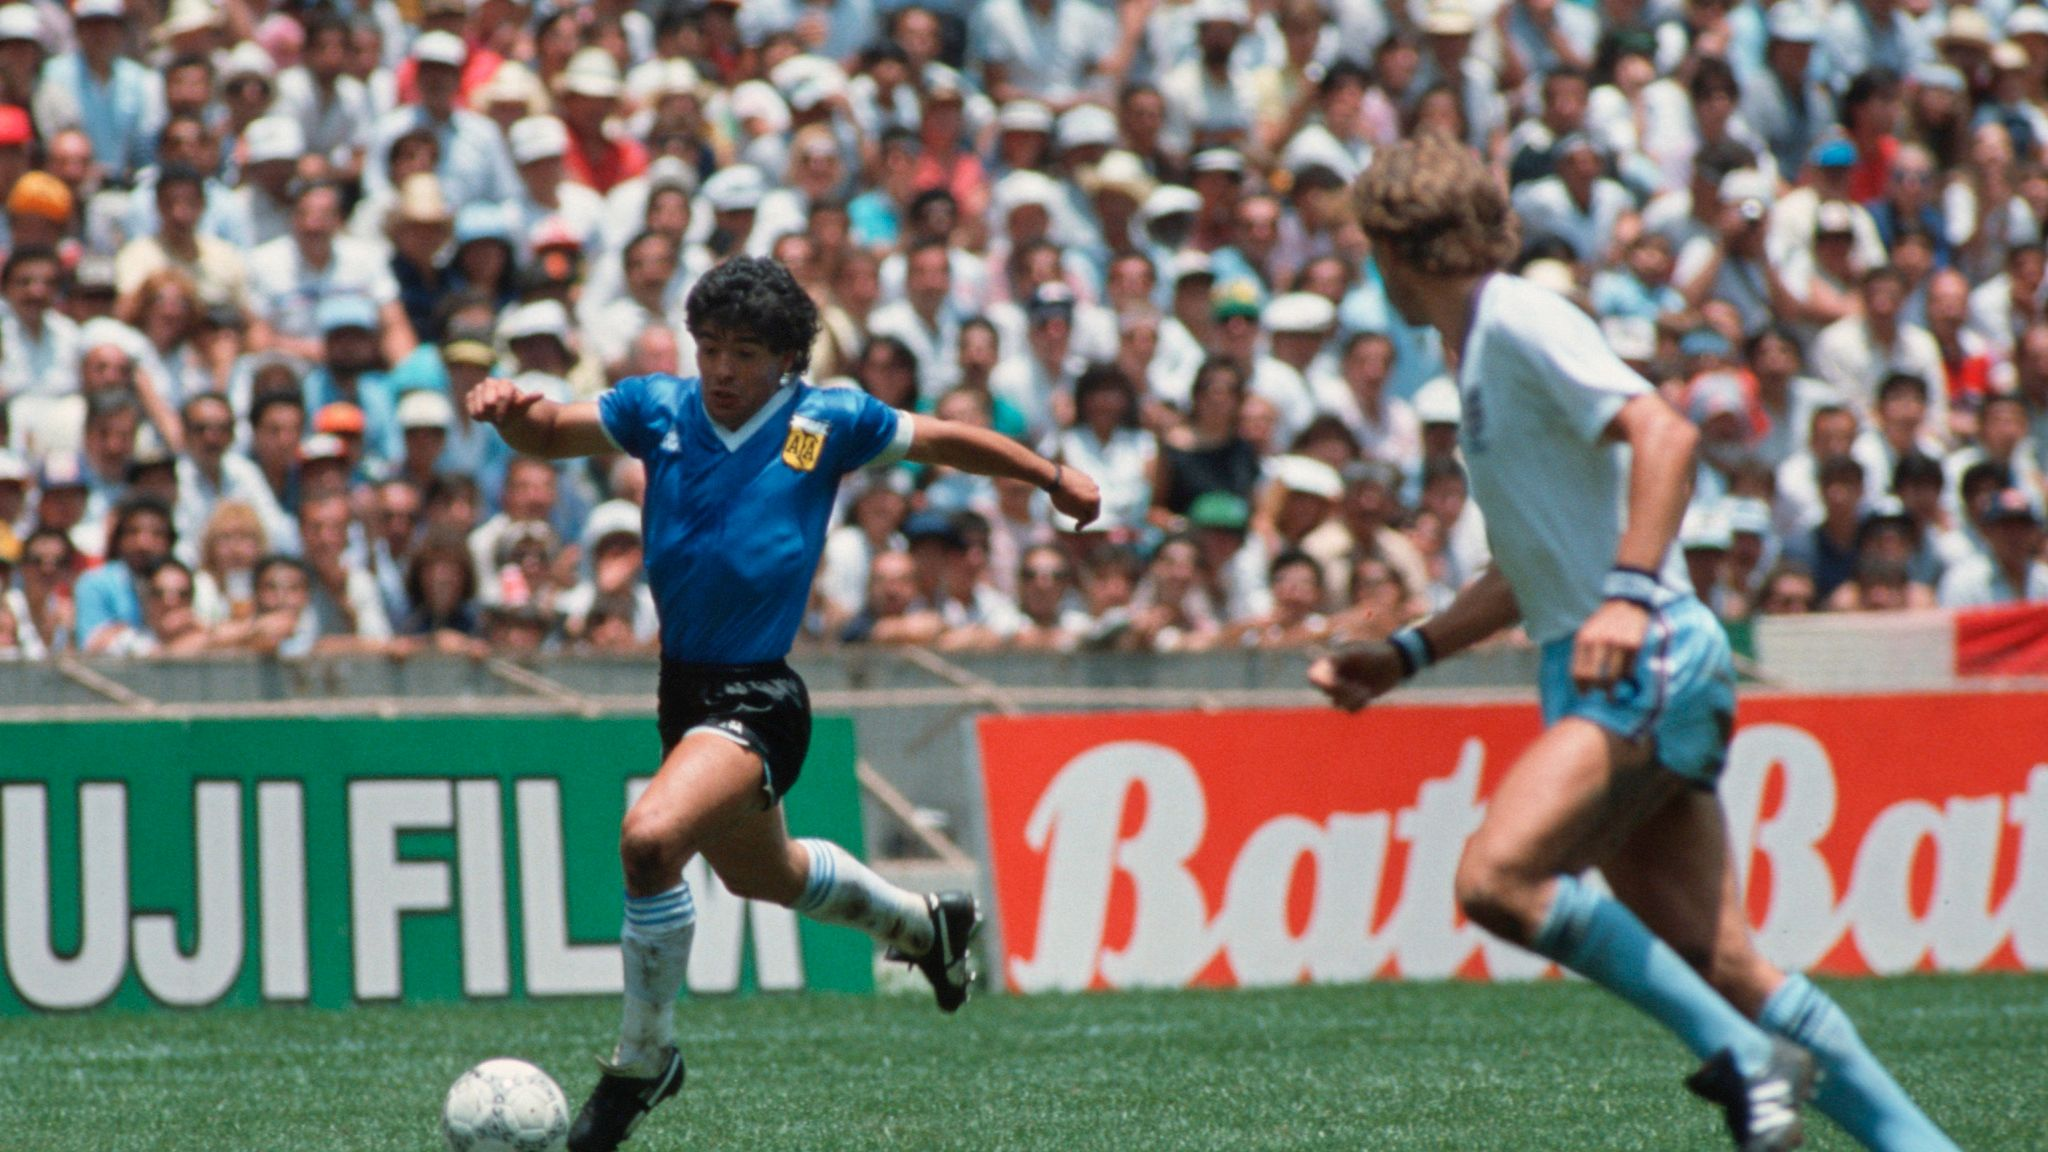 Diego Maradona Versus England In The 1986 World Cup Could